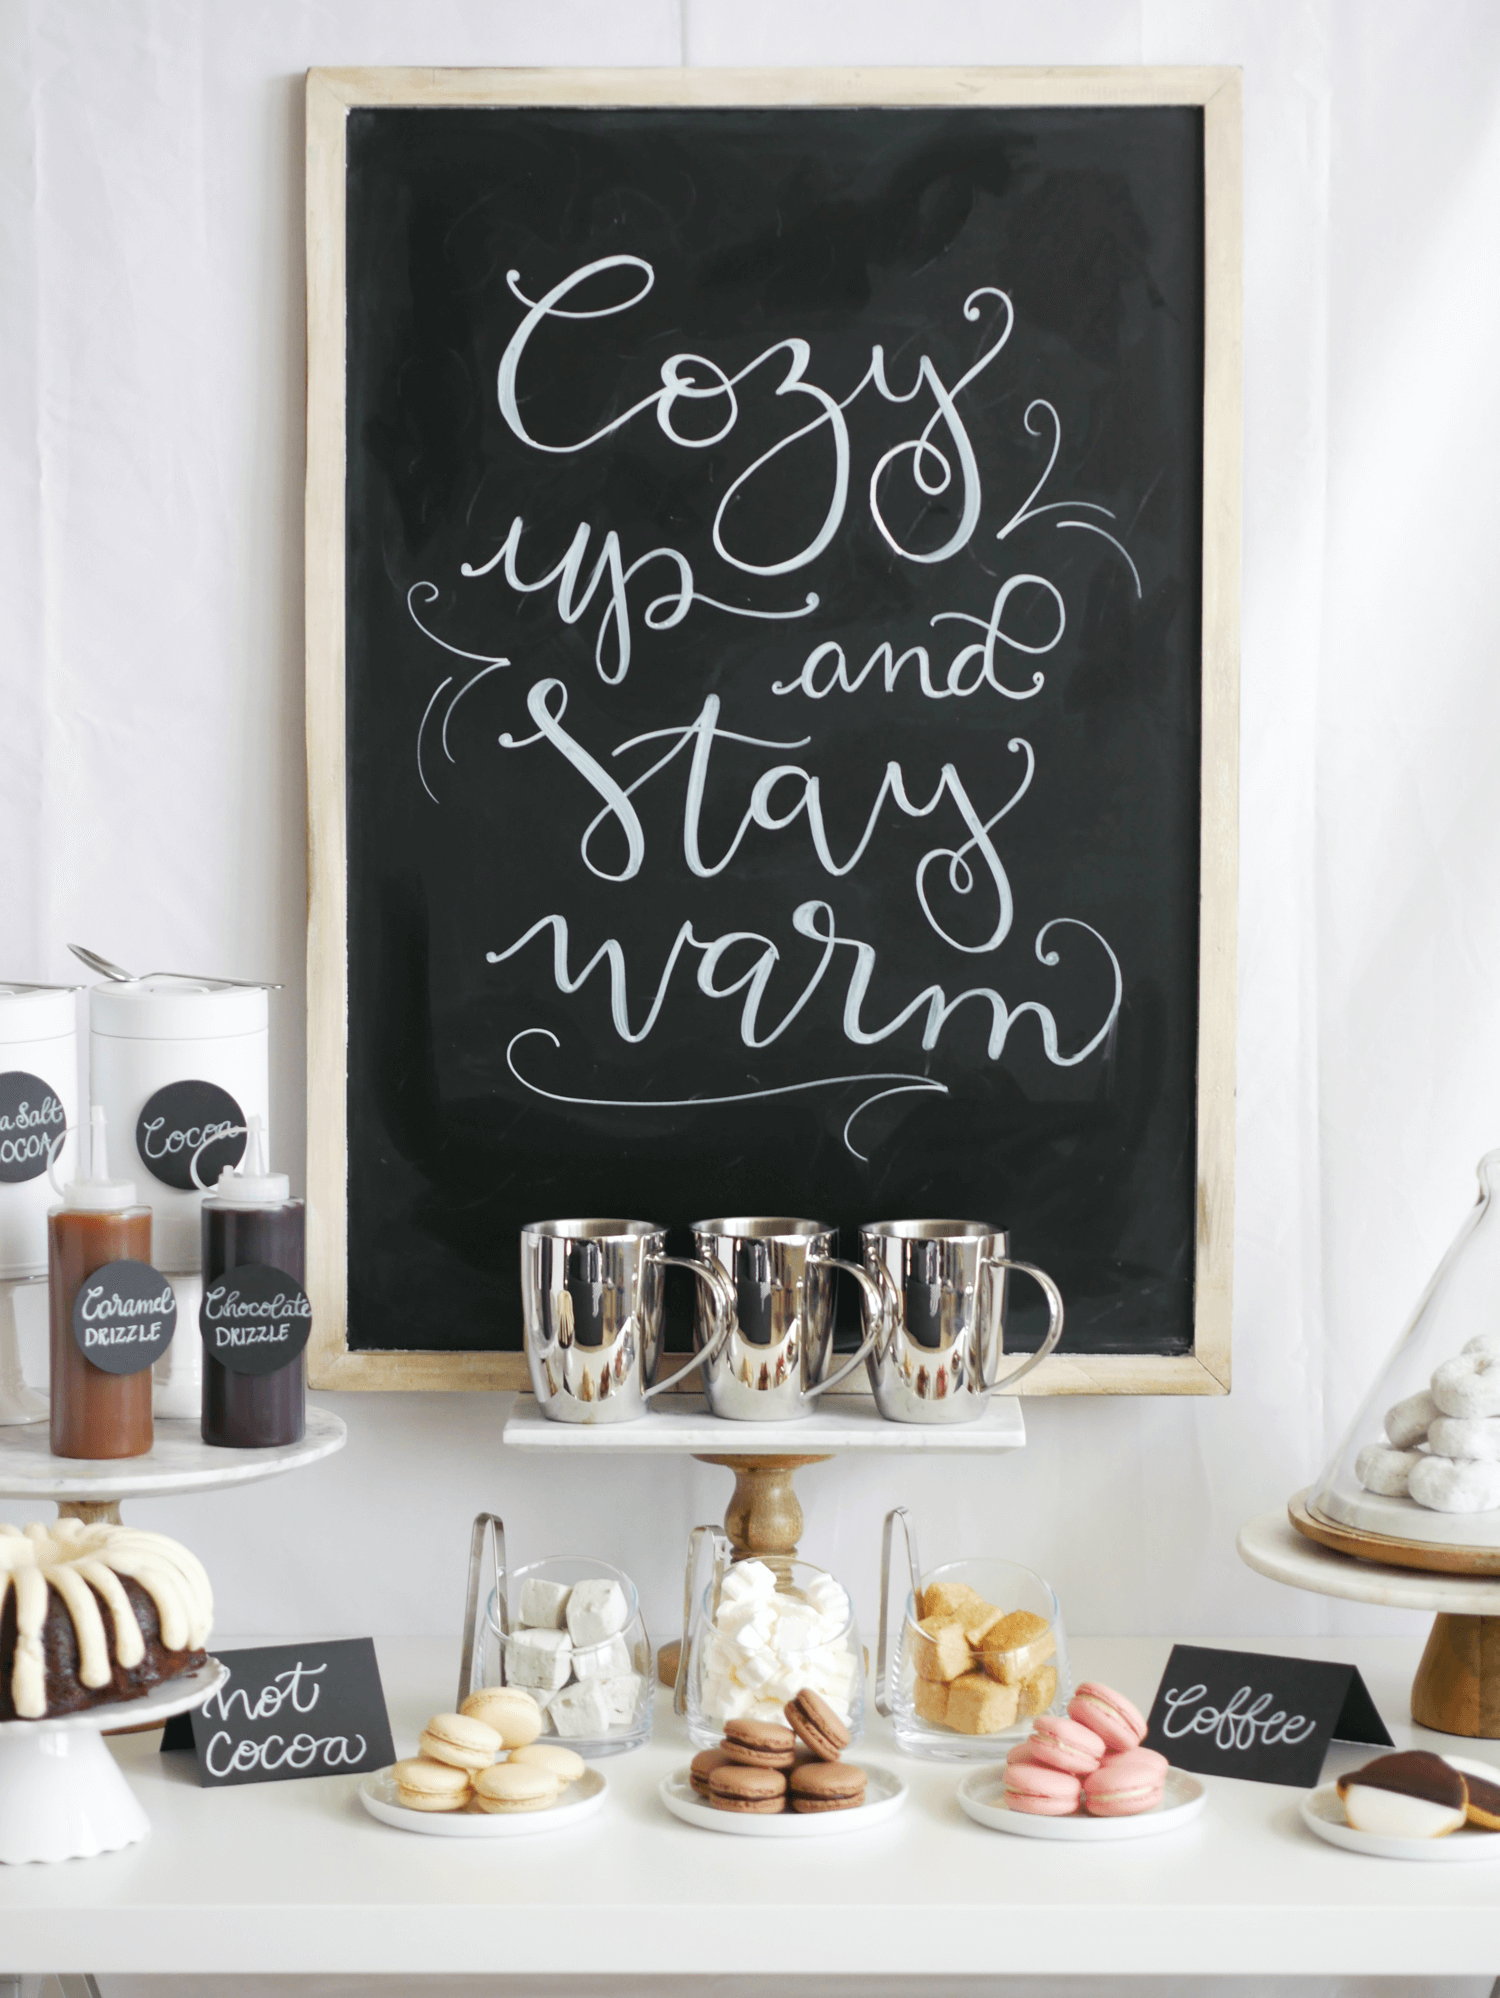 Cozy up and stay warm with this beautiful DIY Chalkboard Sign. Add flair to your Hot Cocoa and Coffee Station with this handmade chalkboard sign. Styled by party stylist Mint Event Design. #partyideas #partyinspiration #hotchocolate #hotcocoa #coffeebar #coffeestation #winterparty #winterwedding #chalkboardsign